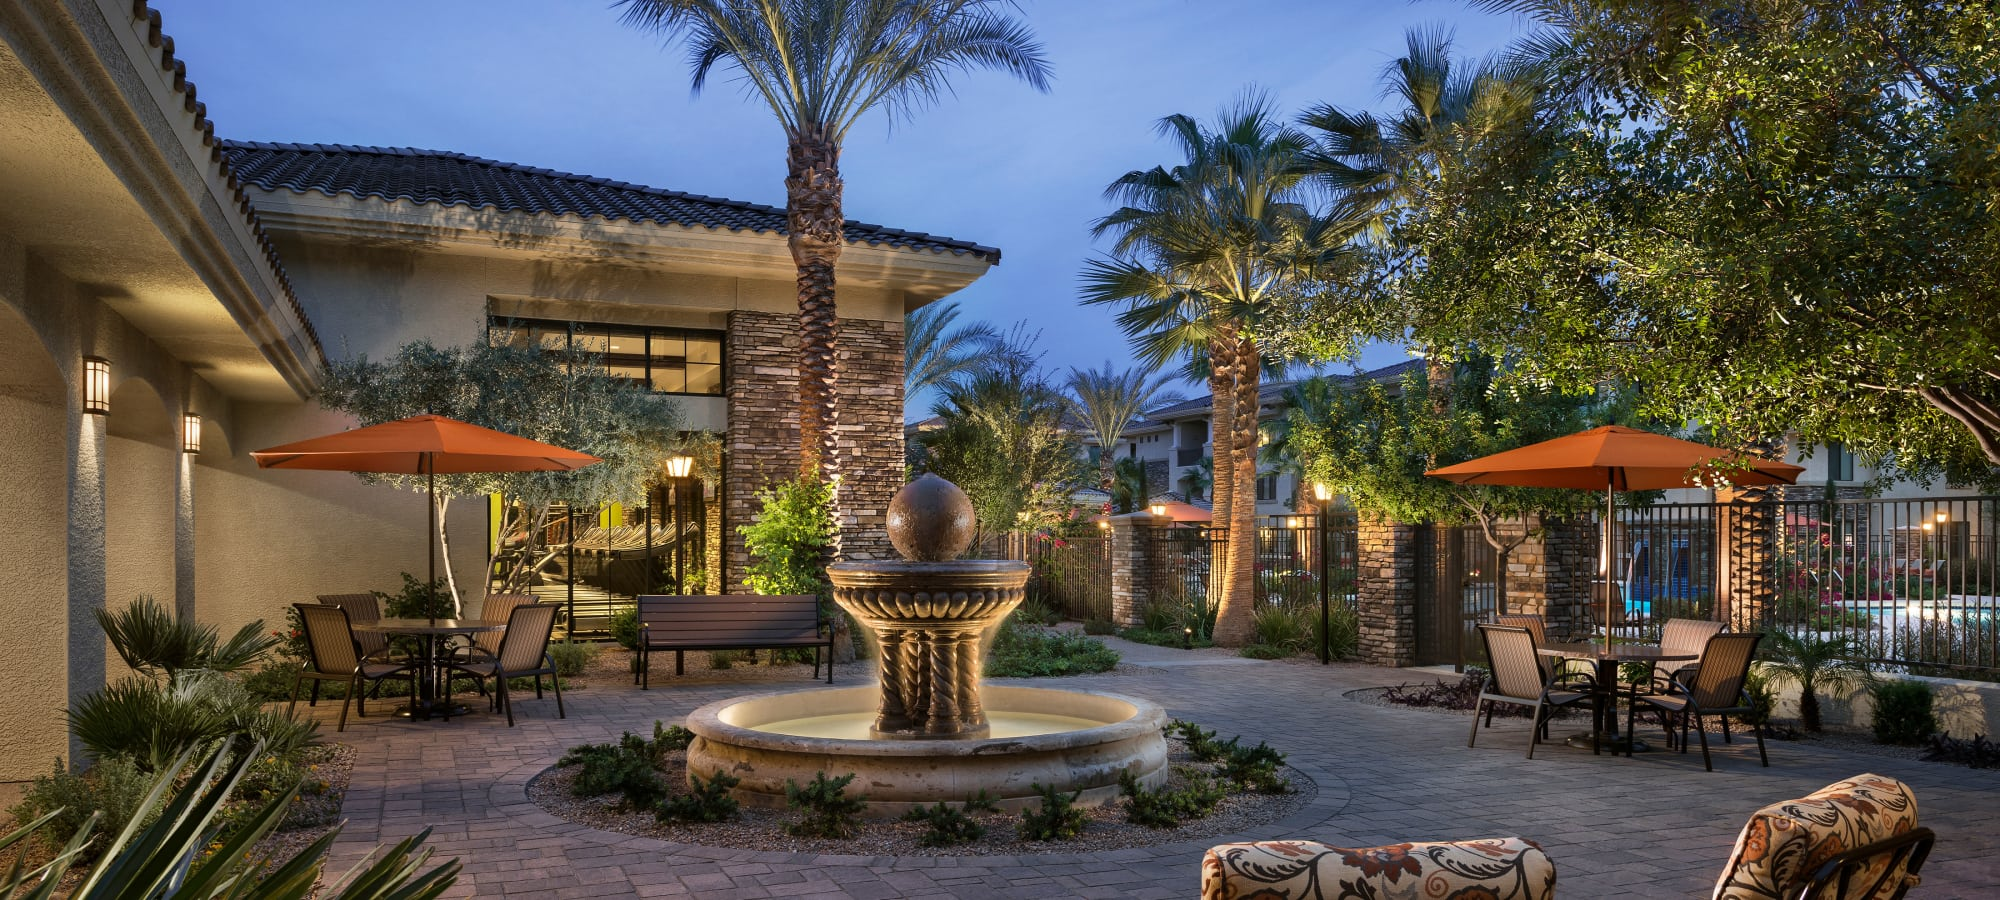 Fountain in courtyard at dusk at San Travesia in Scottsdale, Arizona